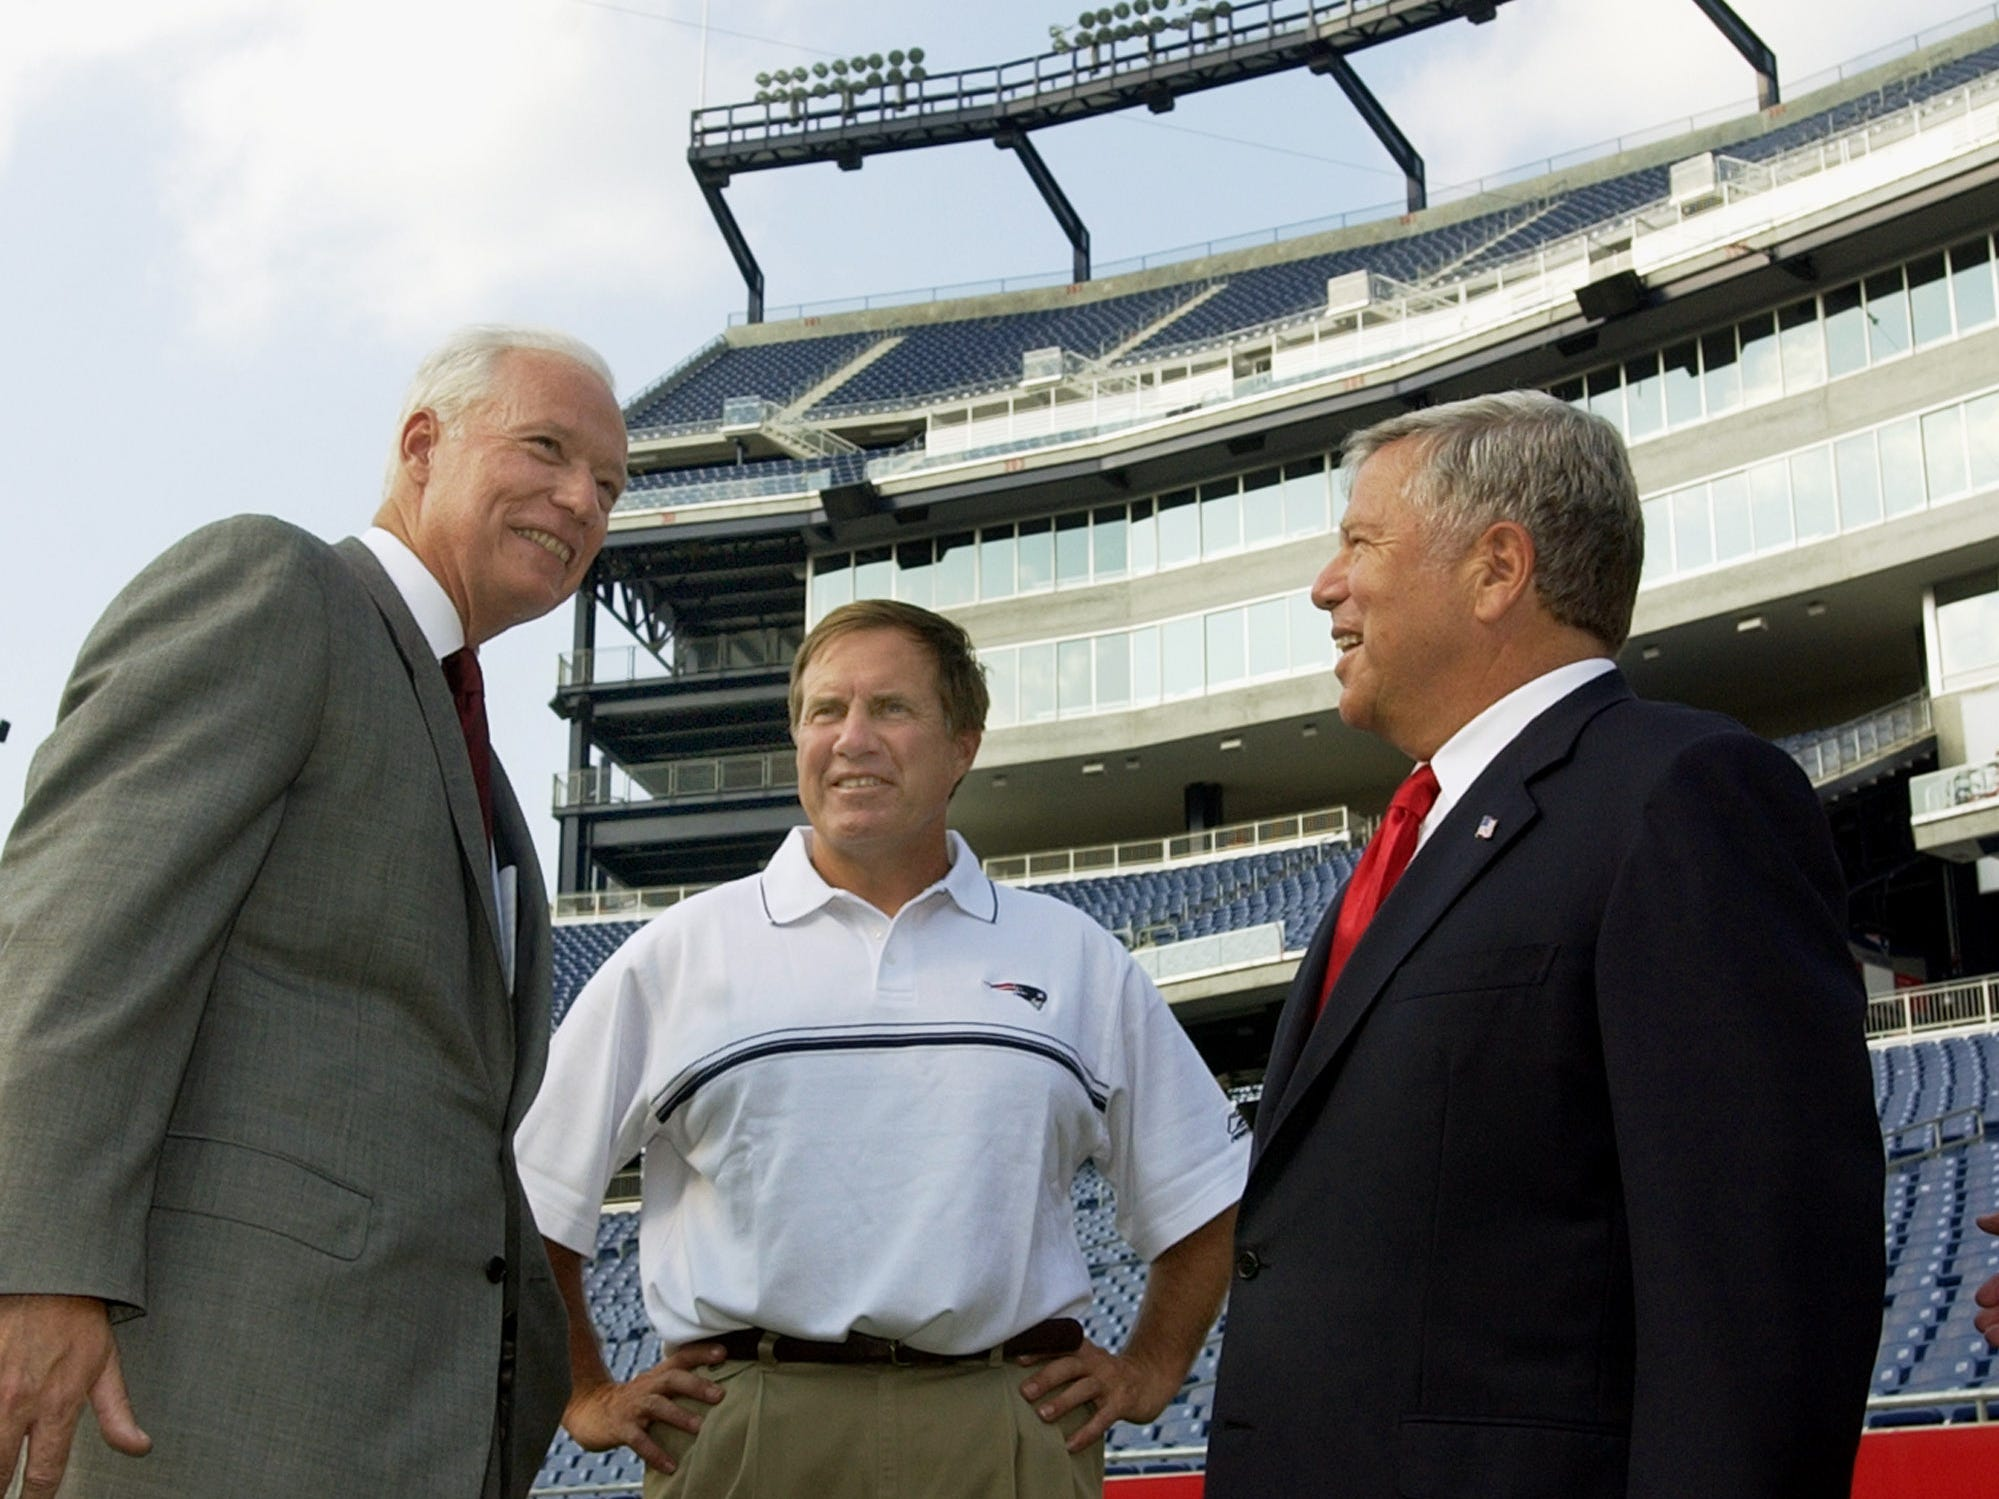 Kraft and Patriots head coach Bill Belichick, center, chat with James M. Kilts, chairman and CEO of the Gillette Company, left, prior to a news conference in Foxboro, Mass., where they announced a 15-year agreement that gives Gillette exclusive naming rights to the stadium formerly known as CMGI Field.